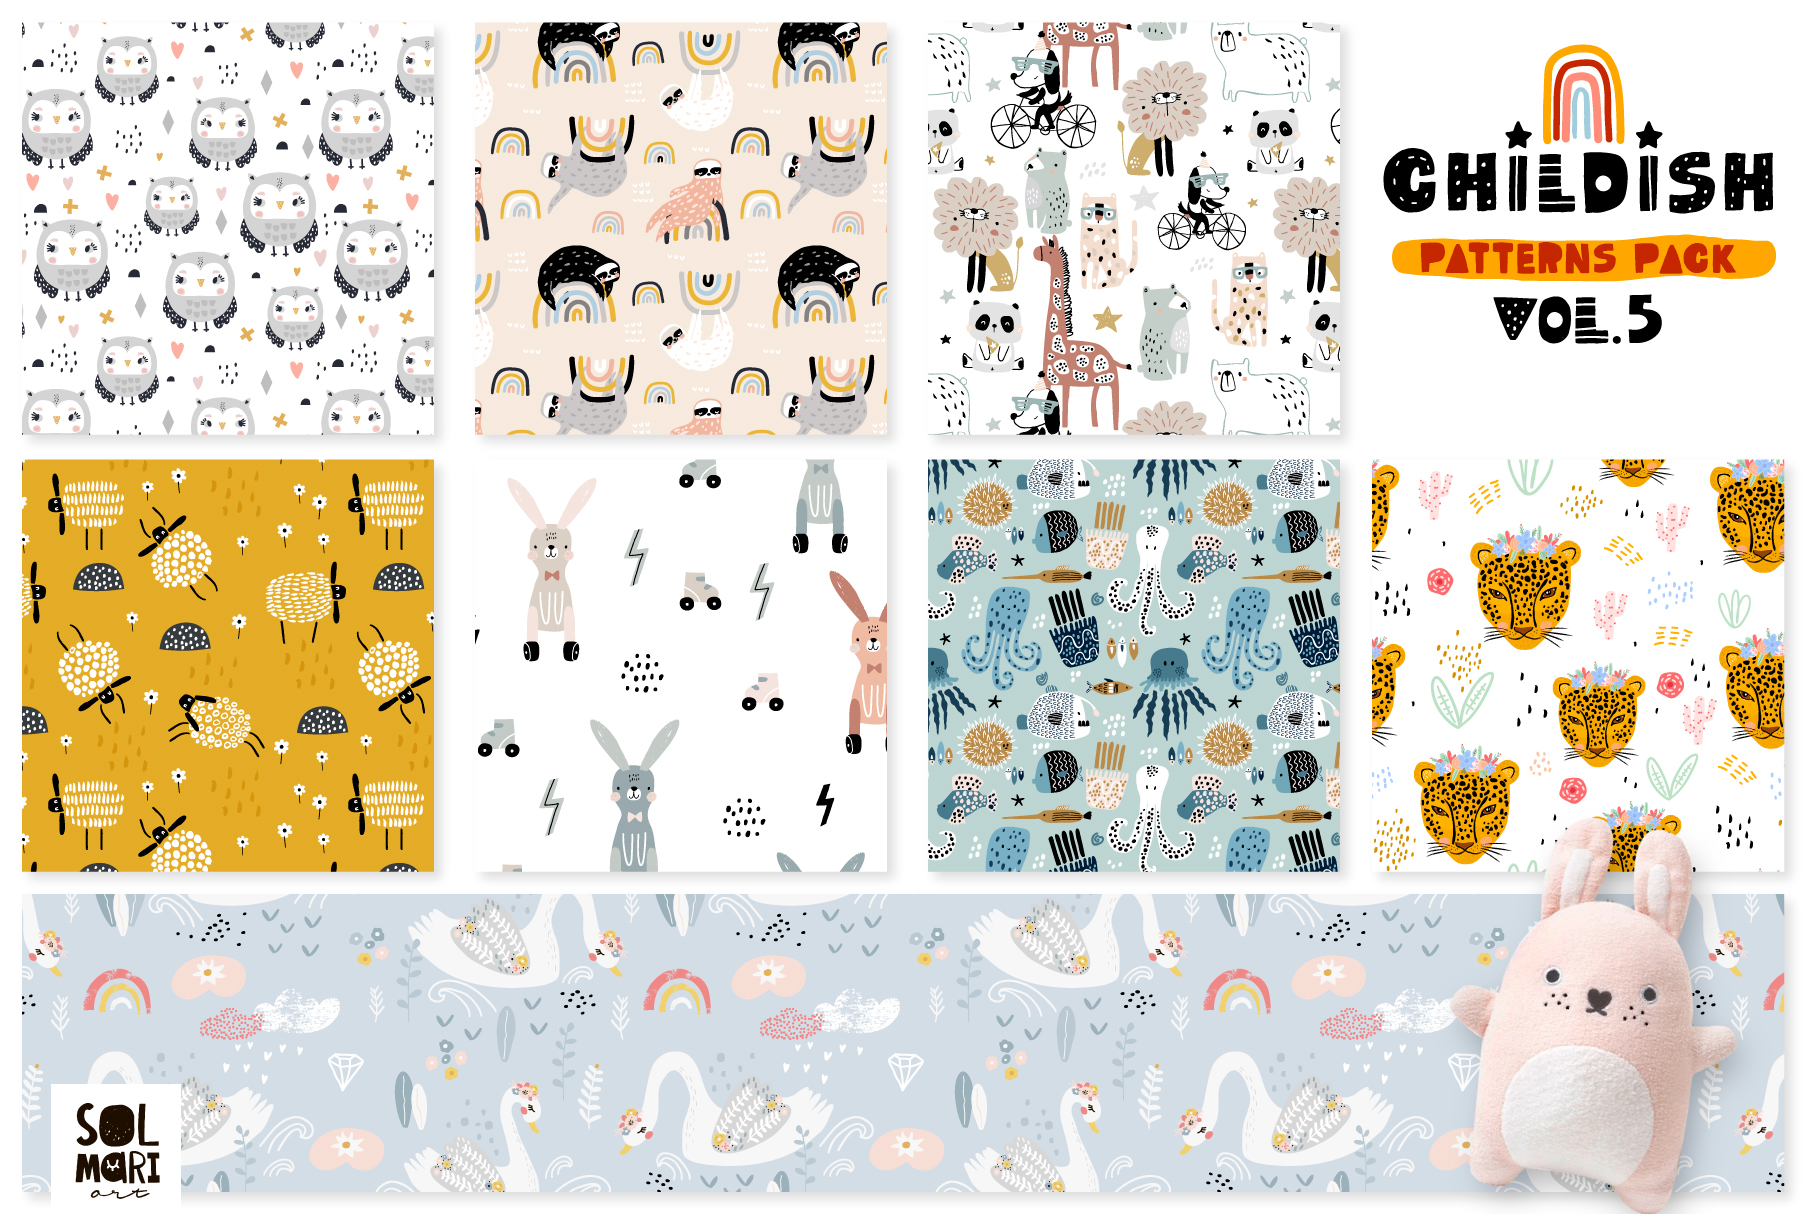 Childish patterns pack vol. 5 example image 6